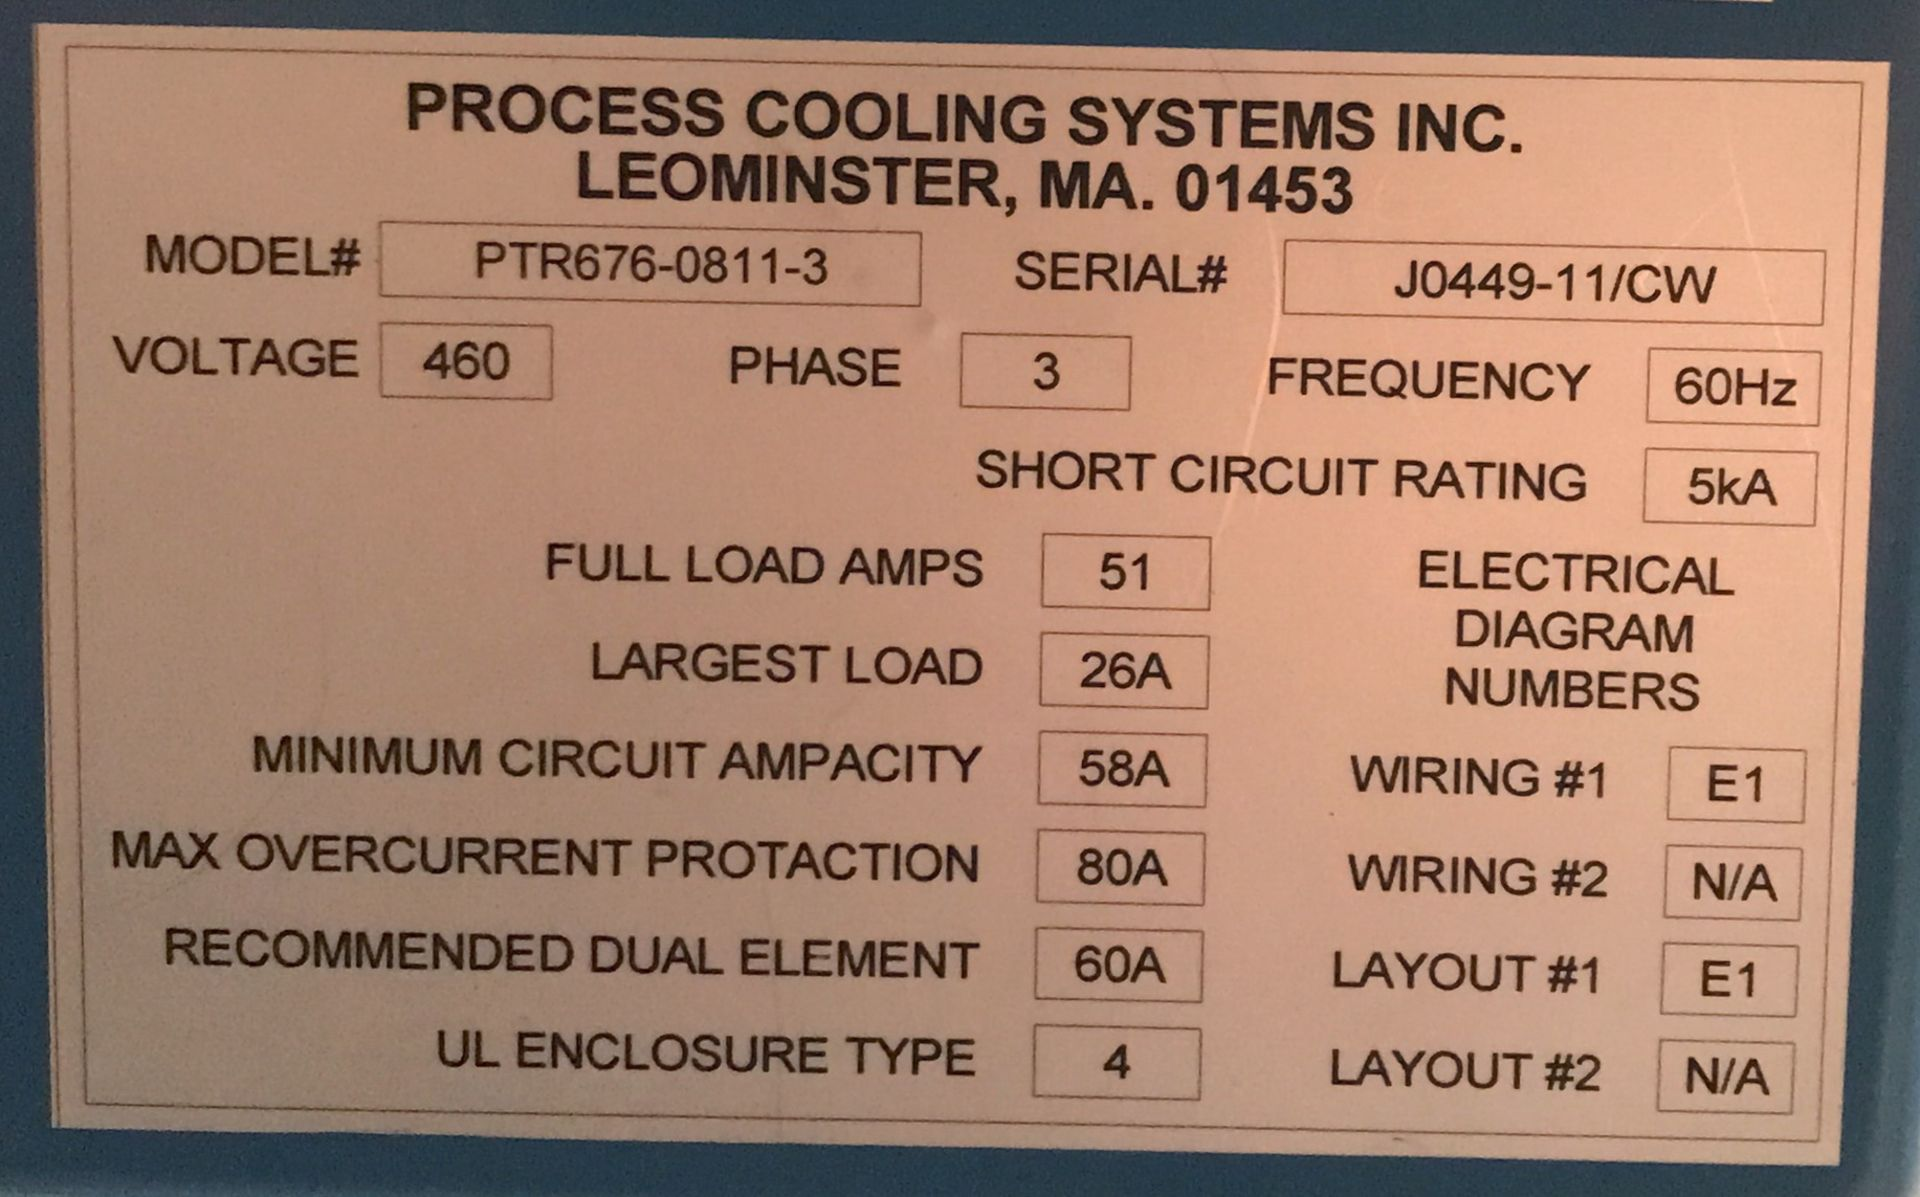 TRANE RAUJC404PC13A0DF00C00 ROOFTOP CHILLER UNIT WITH 460V, 3 PHASE, PROCESS COOLING SYSTEMS - Image 4 of 4